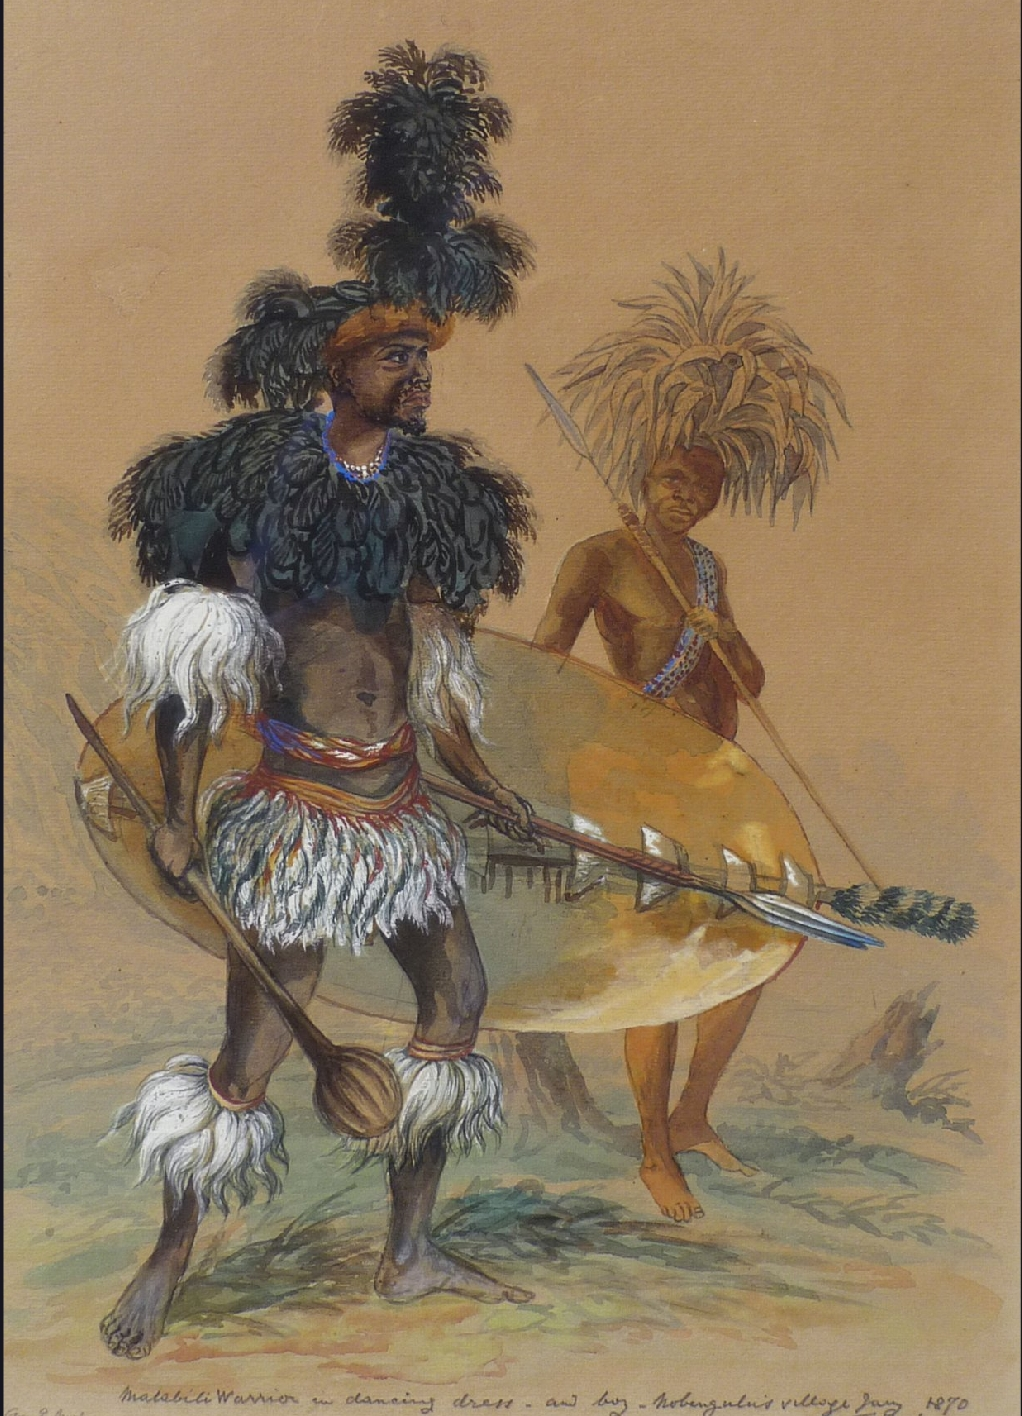 https://upload.wikimedia.org/wikipedia/commons/b/bf/Thomas_Baines_-_Matebele_warrior_in_dancing_dress.jpg